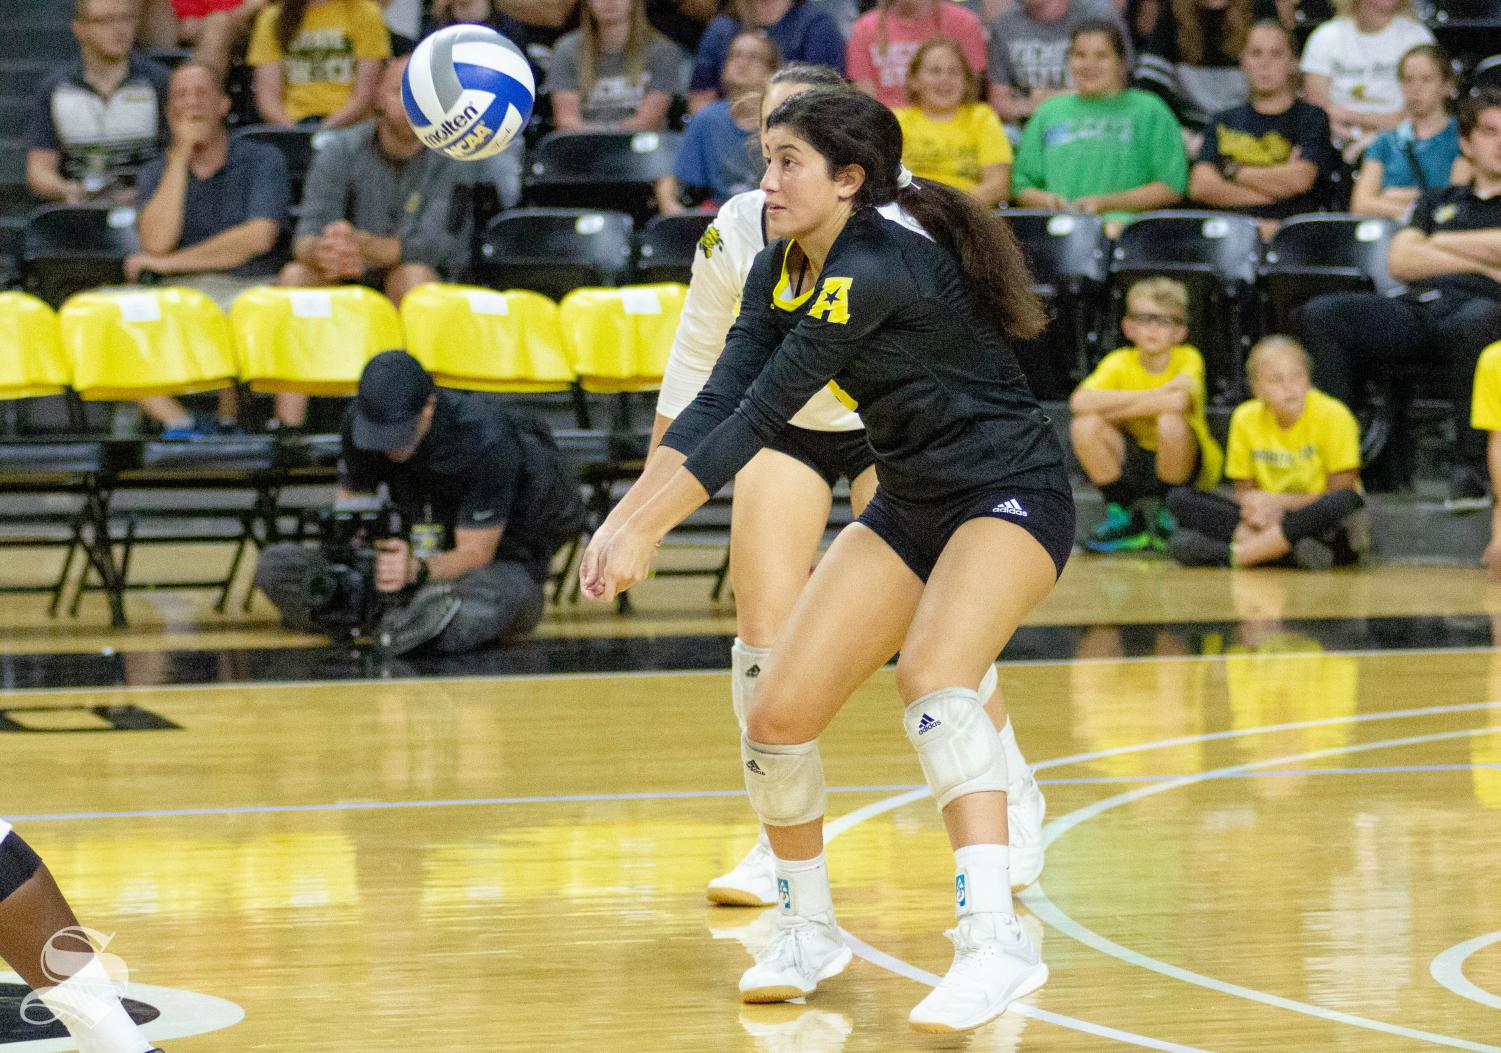 Wichita State freshman Arianna Arjomand hits the ball against Texas on Sept. 14 inside Charles Koch Arena.